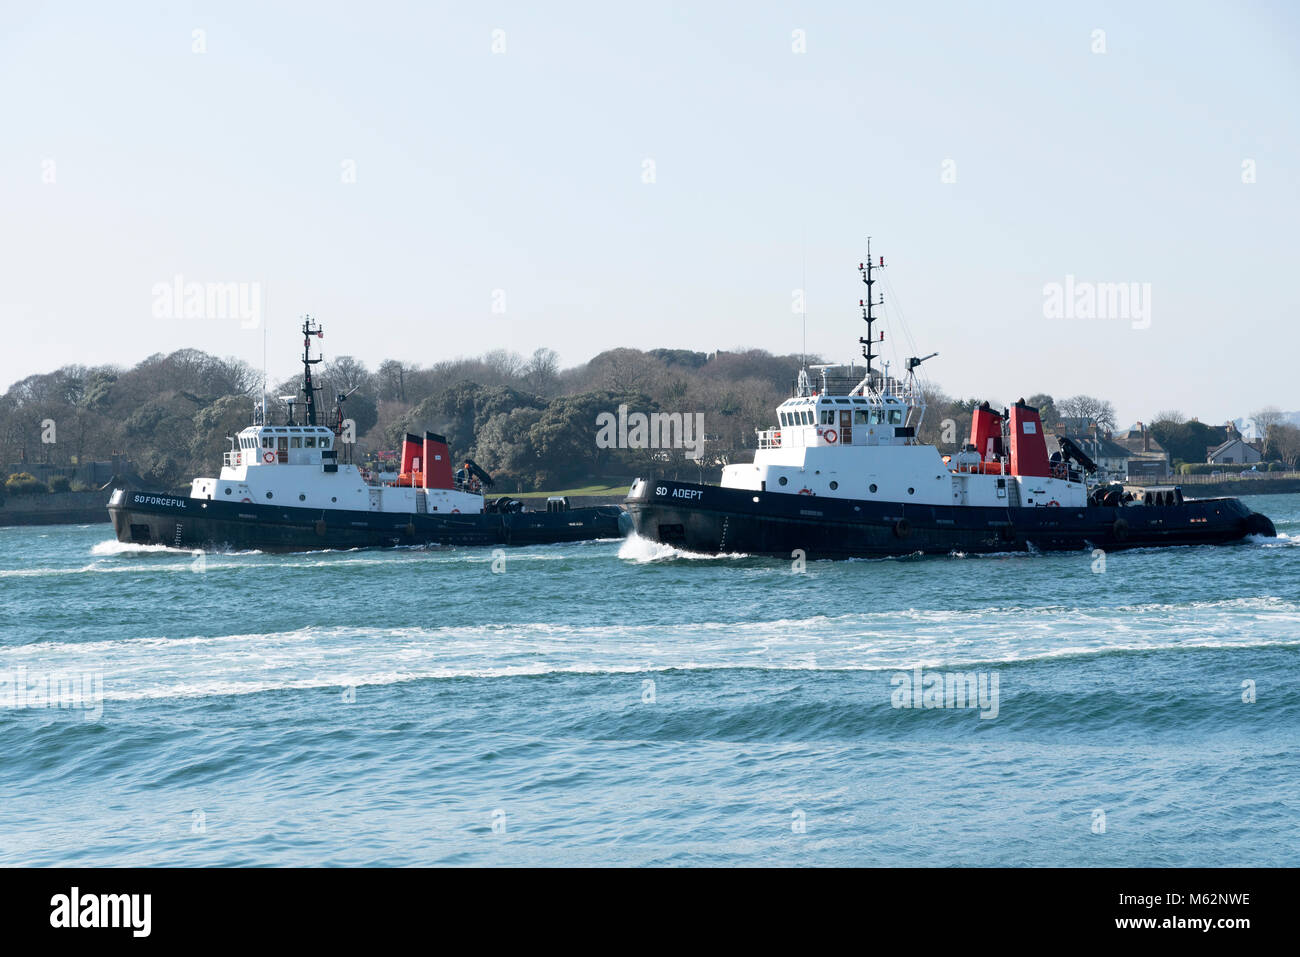 Plymouth, Devon, England, UK. Ocean going tugs SD Forceful and SD Adept underway departing Devonport Harbour. February - Stock Image